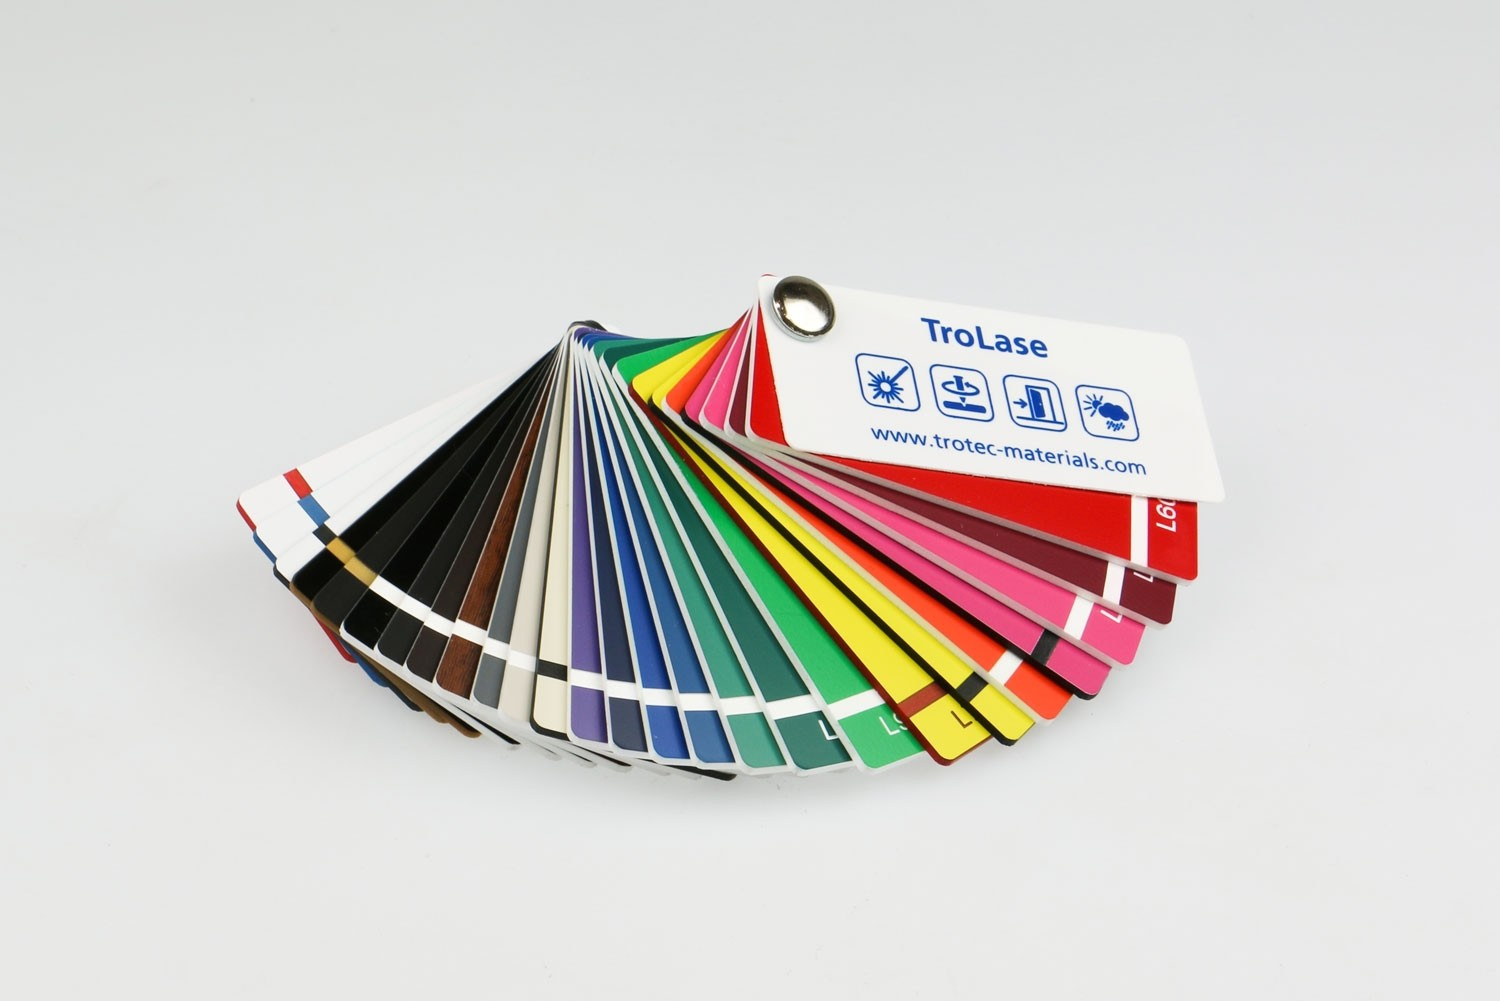 Color Fan TroLase